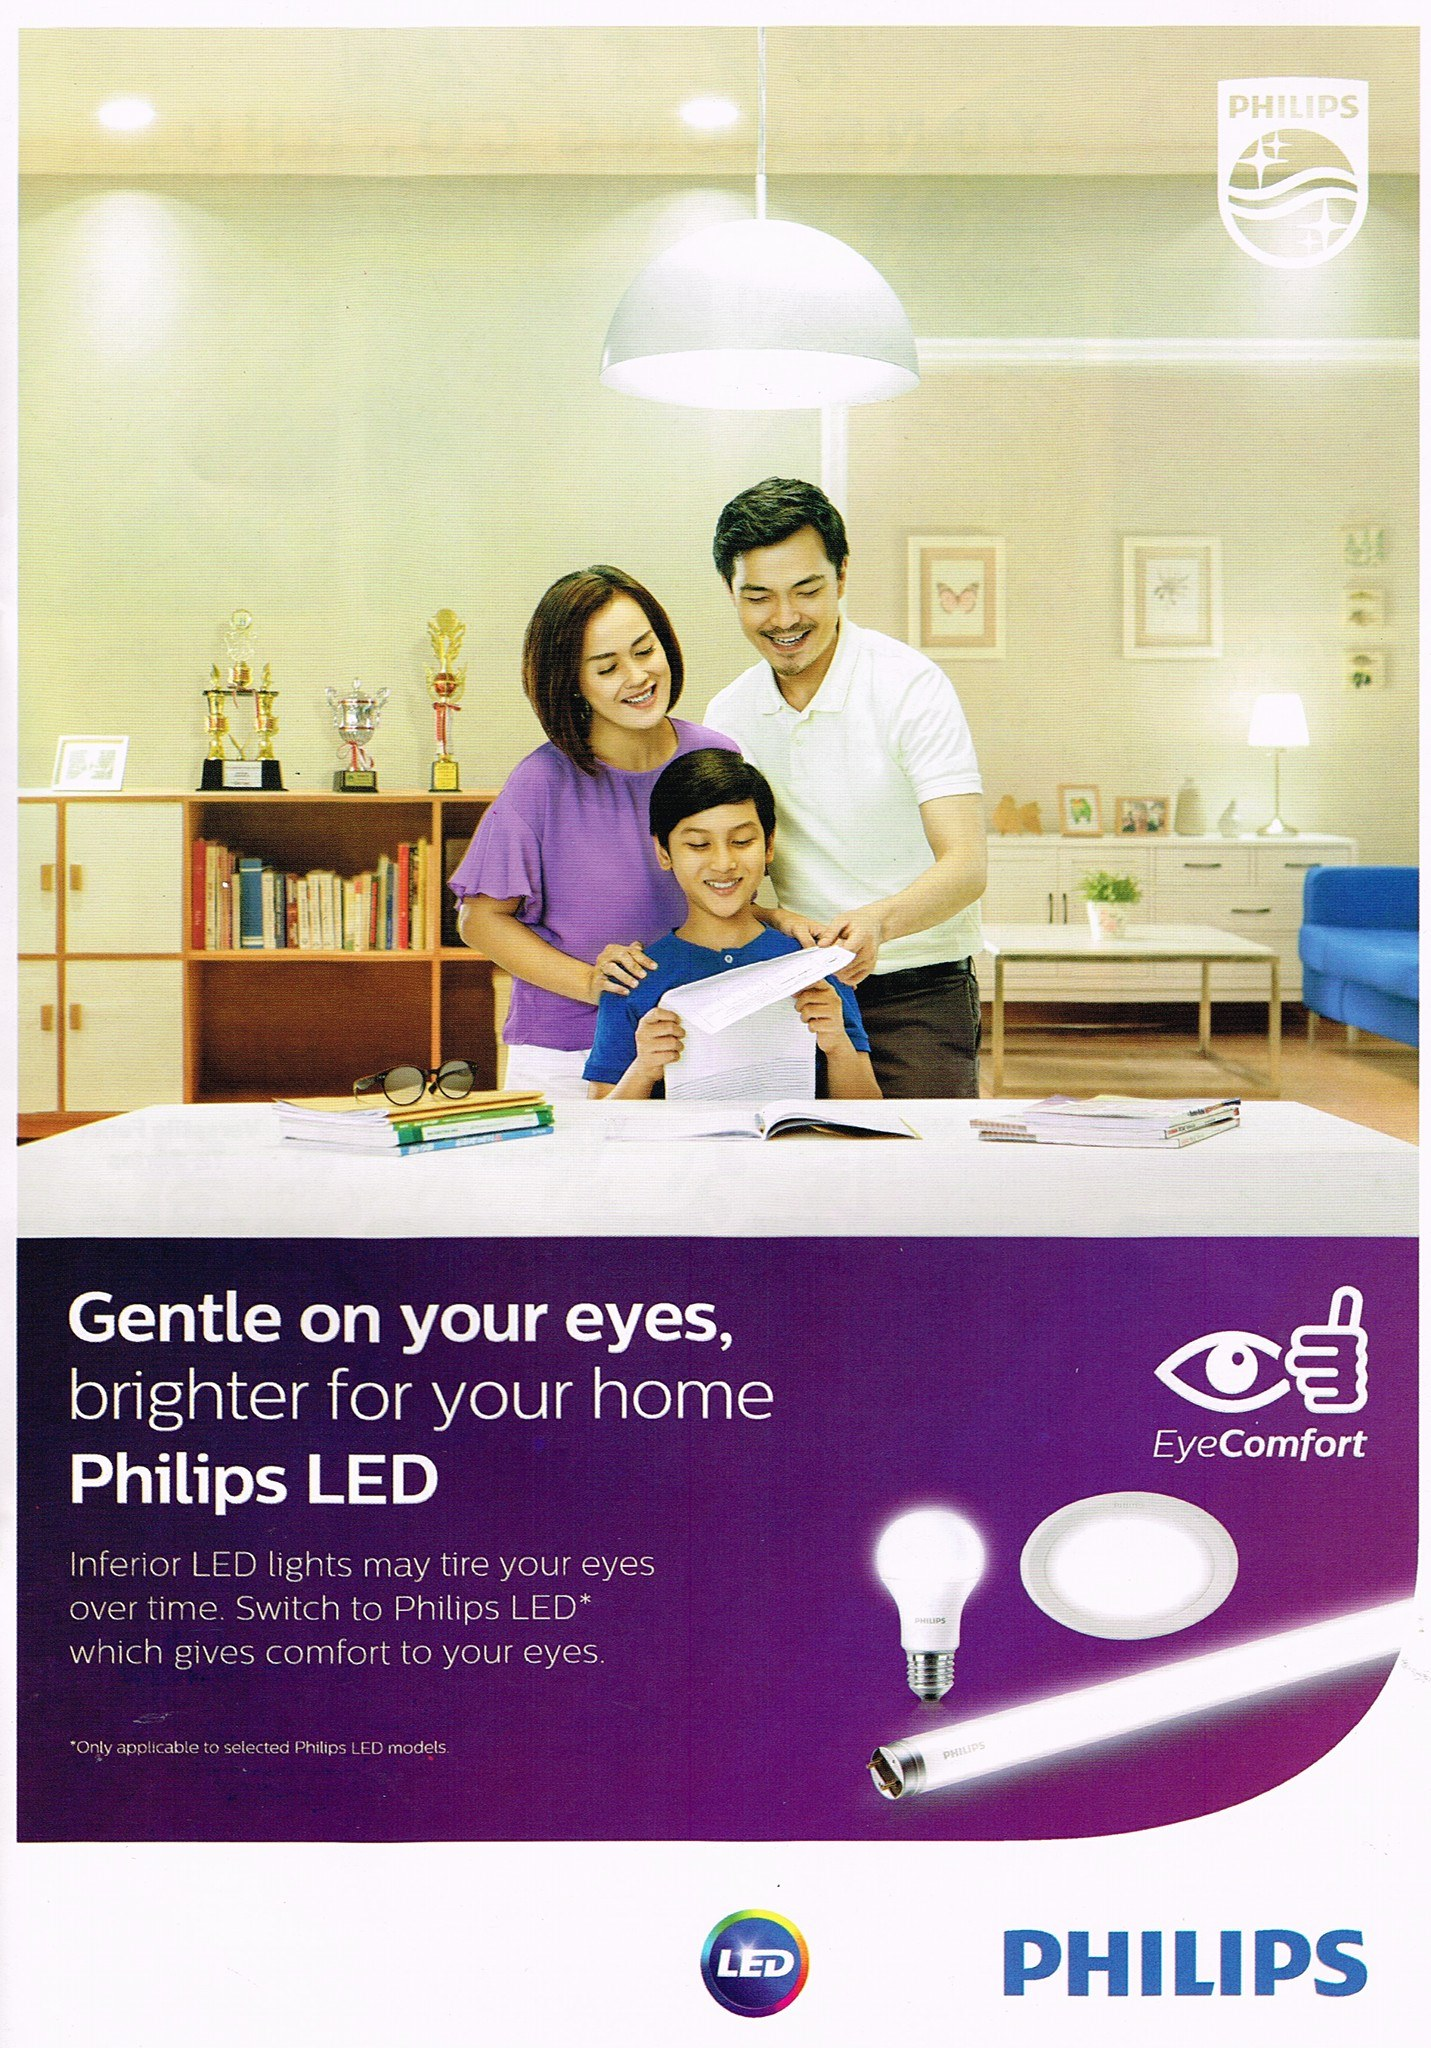 Plilips LED